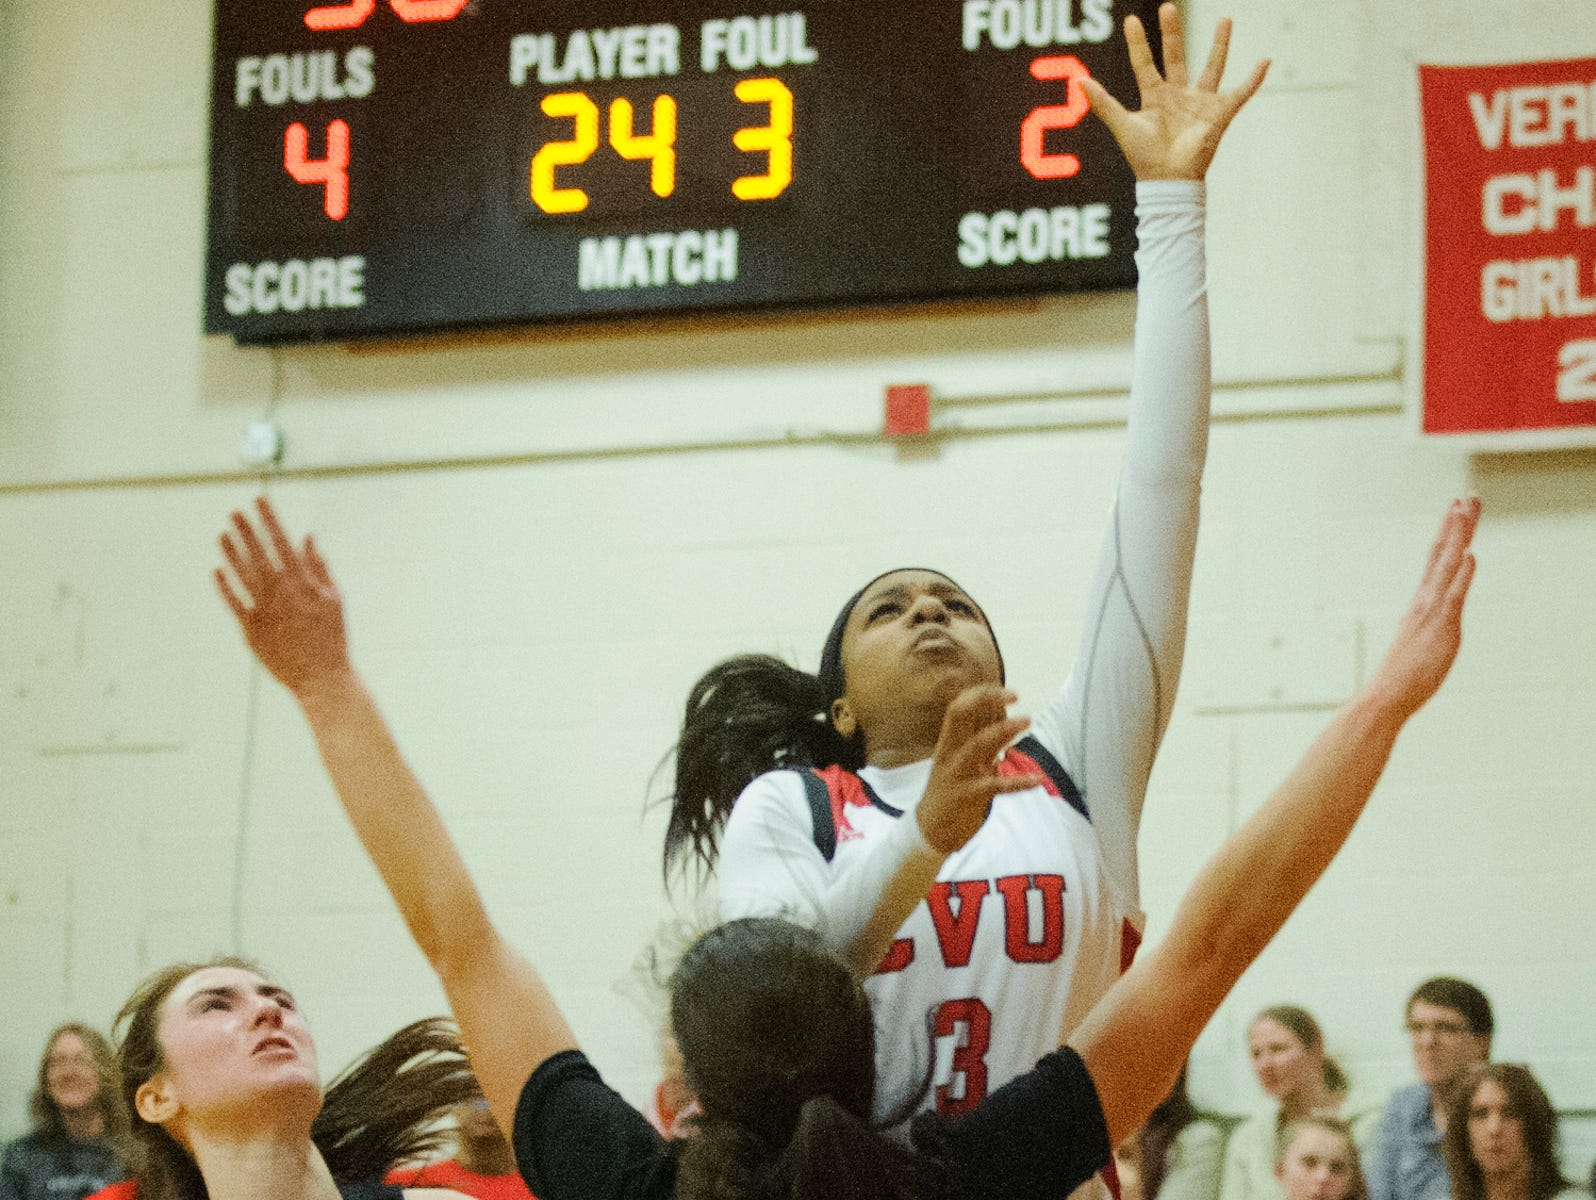 CVU's Mekkena Boyd (3) leaps to take a shot over Rice's Petra Langan (5) during high school girls basketball game between the Rice Green Knights and the Champlain Valley Union Redhawks at CVU High School on Friday night January 11, 2019 in Hinesburg.